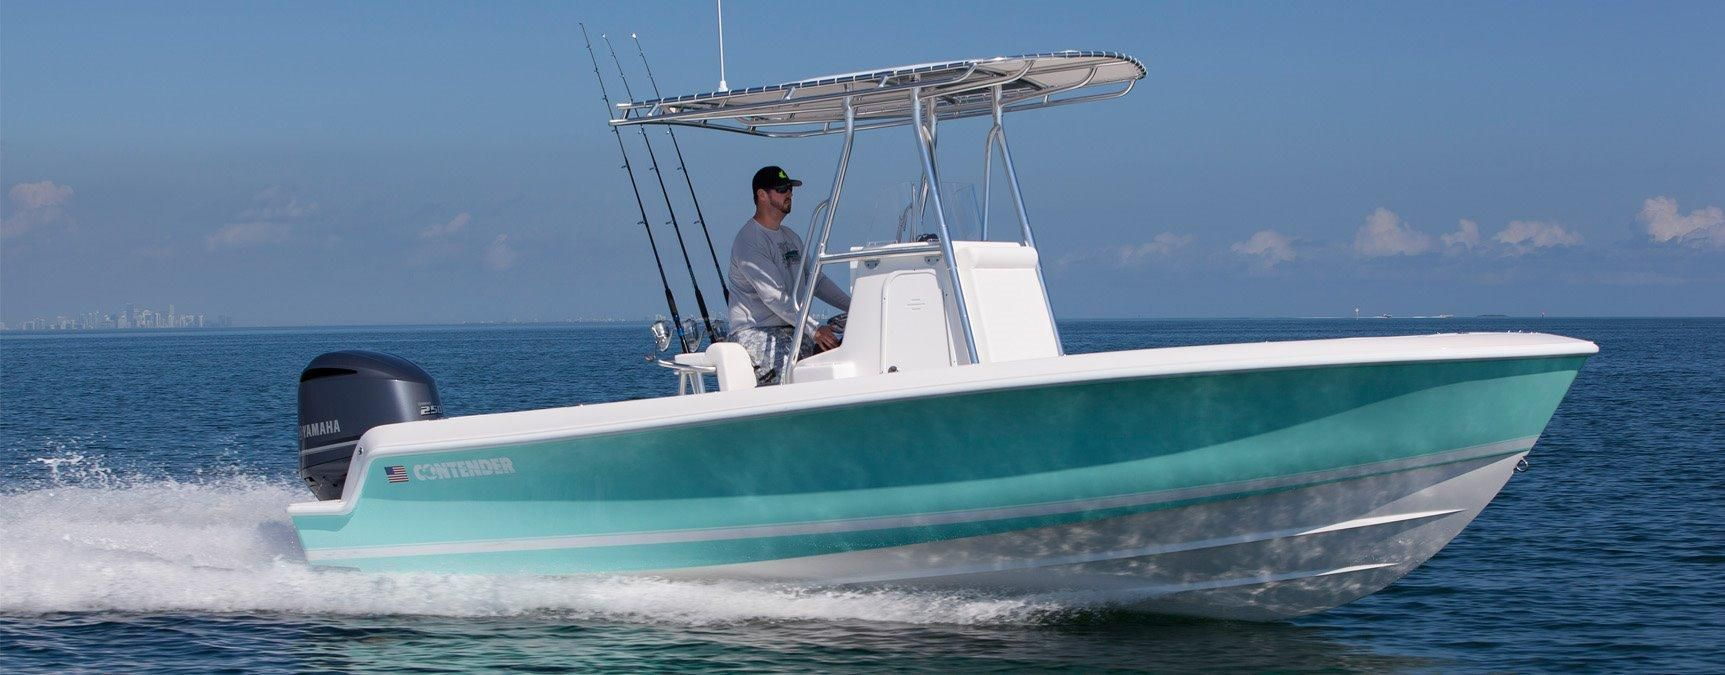 Cape Horn Boats For Sale >> 2018 Contender 22 Sport Power Boat For Sale - www.yachtworld.com